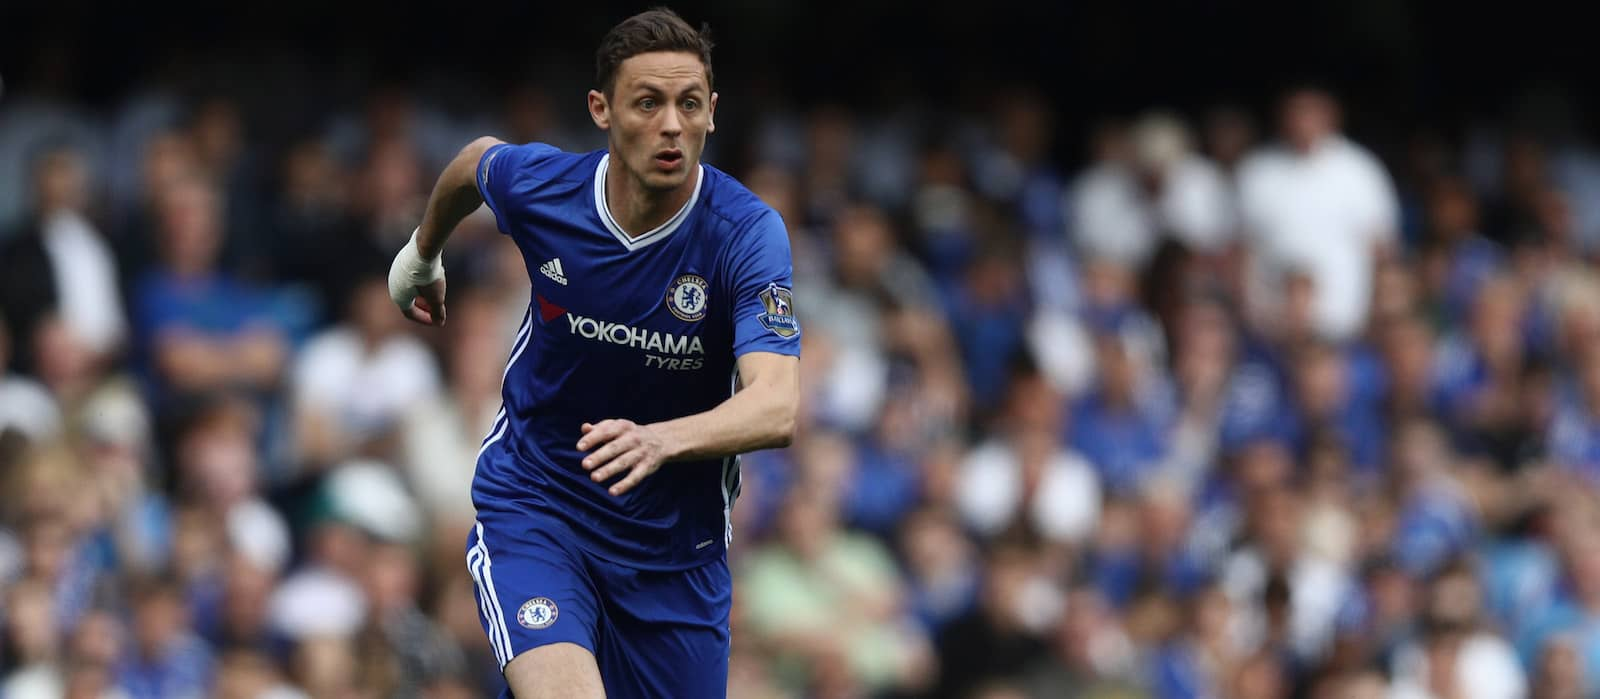 Gary Neville urges Jose Mourinho to sign Nemanja Matic this summer